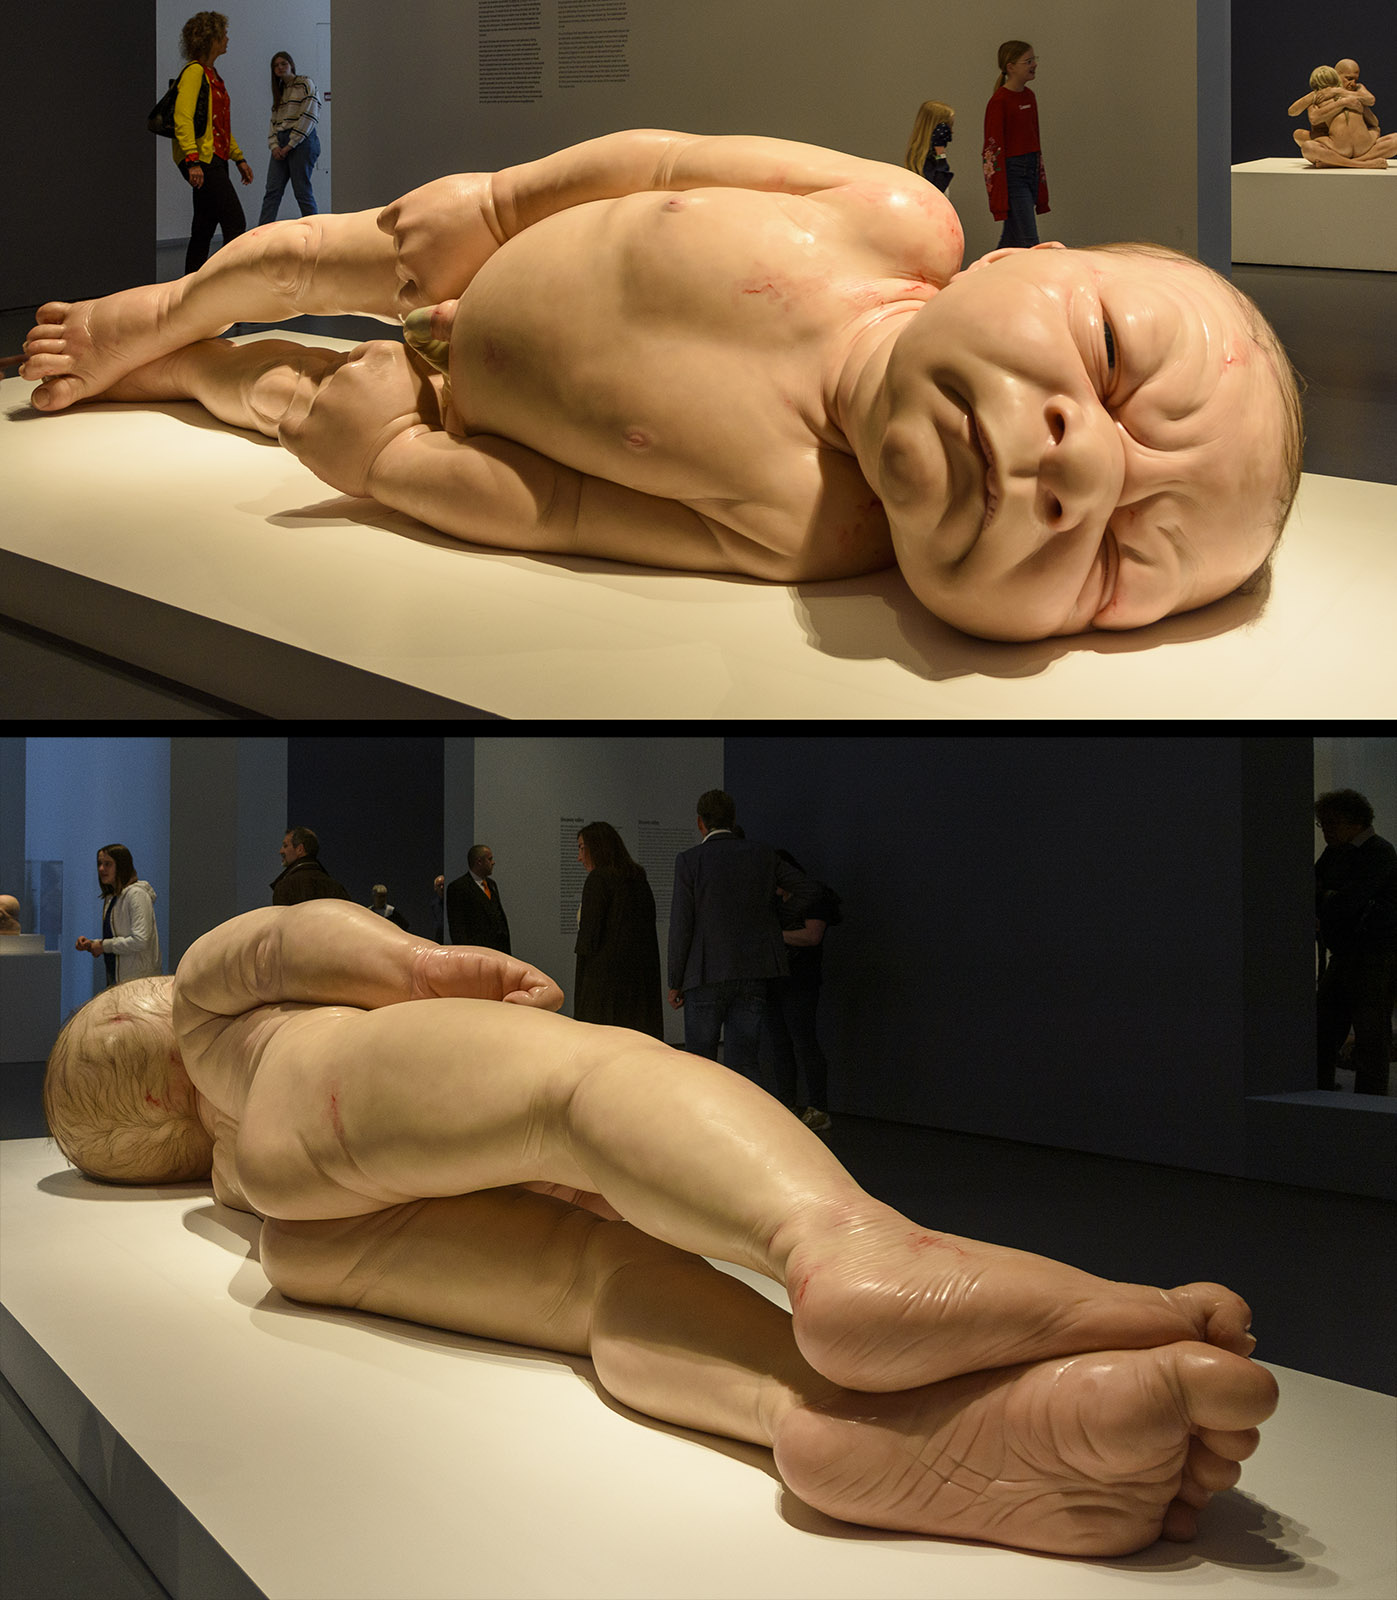 Ron Mueck - A Girl, Kunsthal, Hyperrealism Sculpture